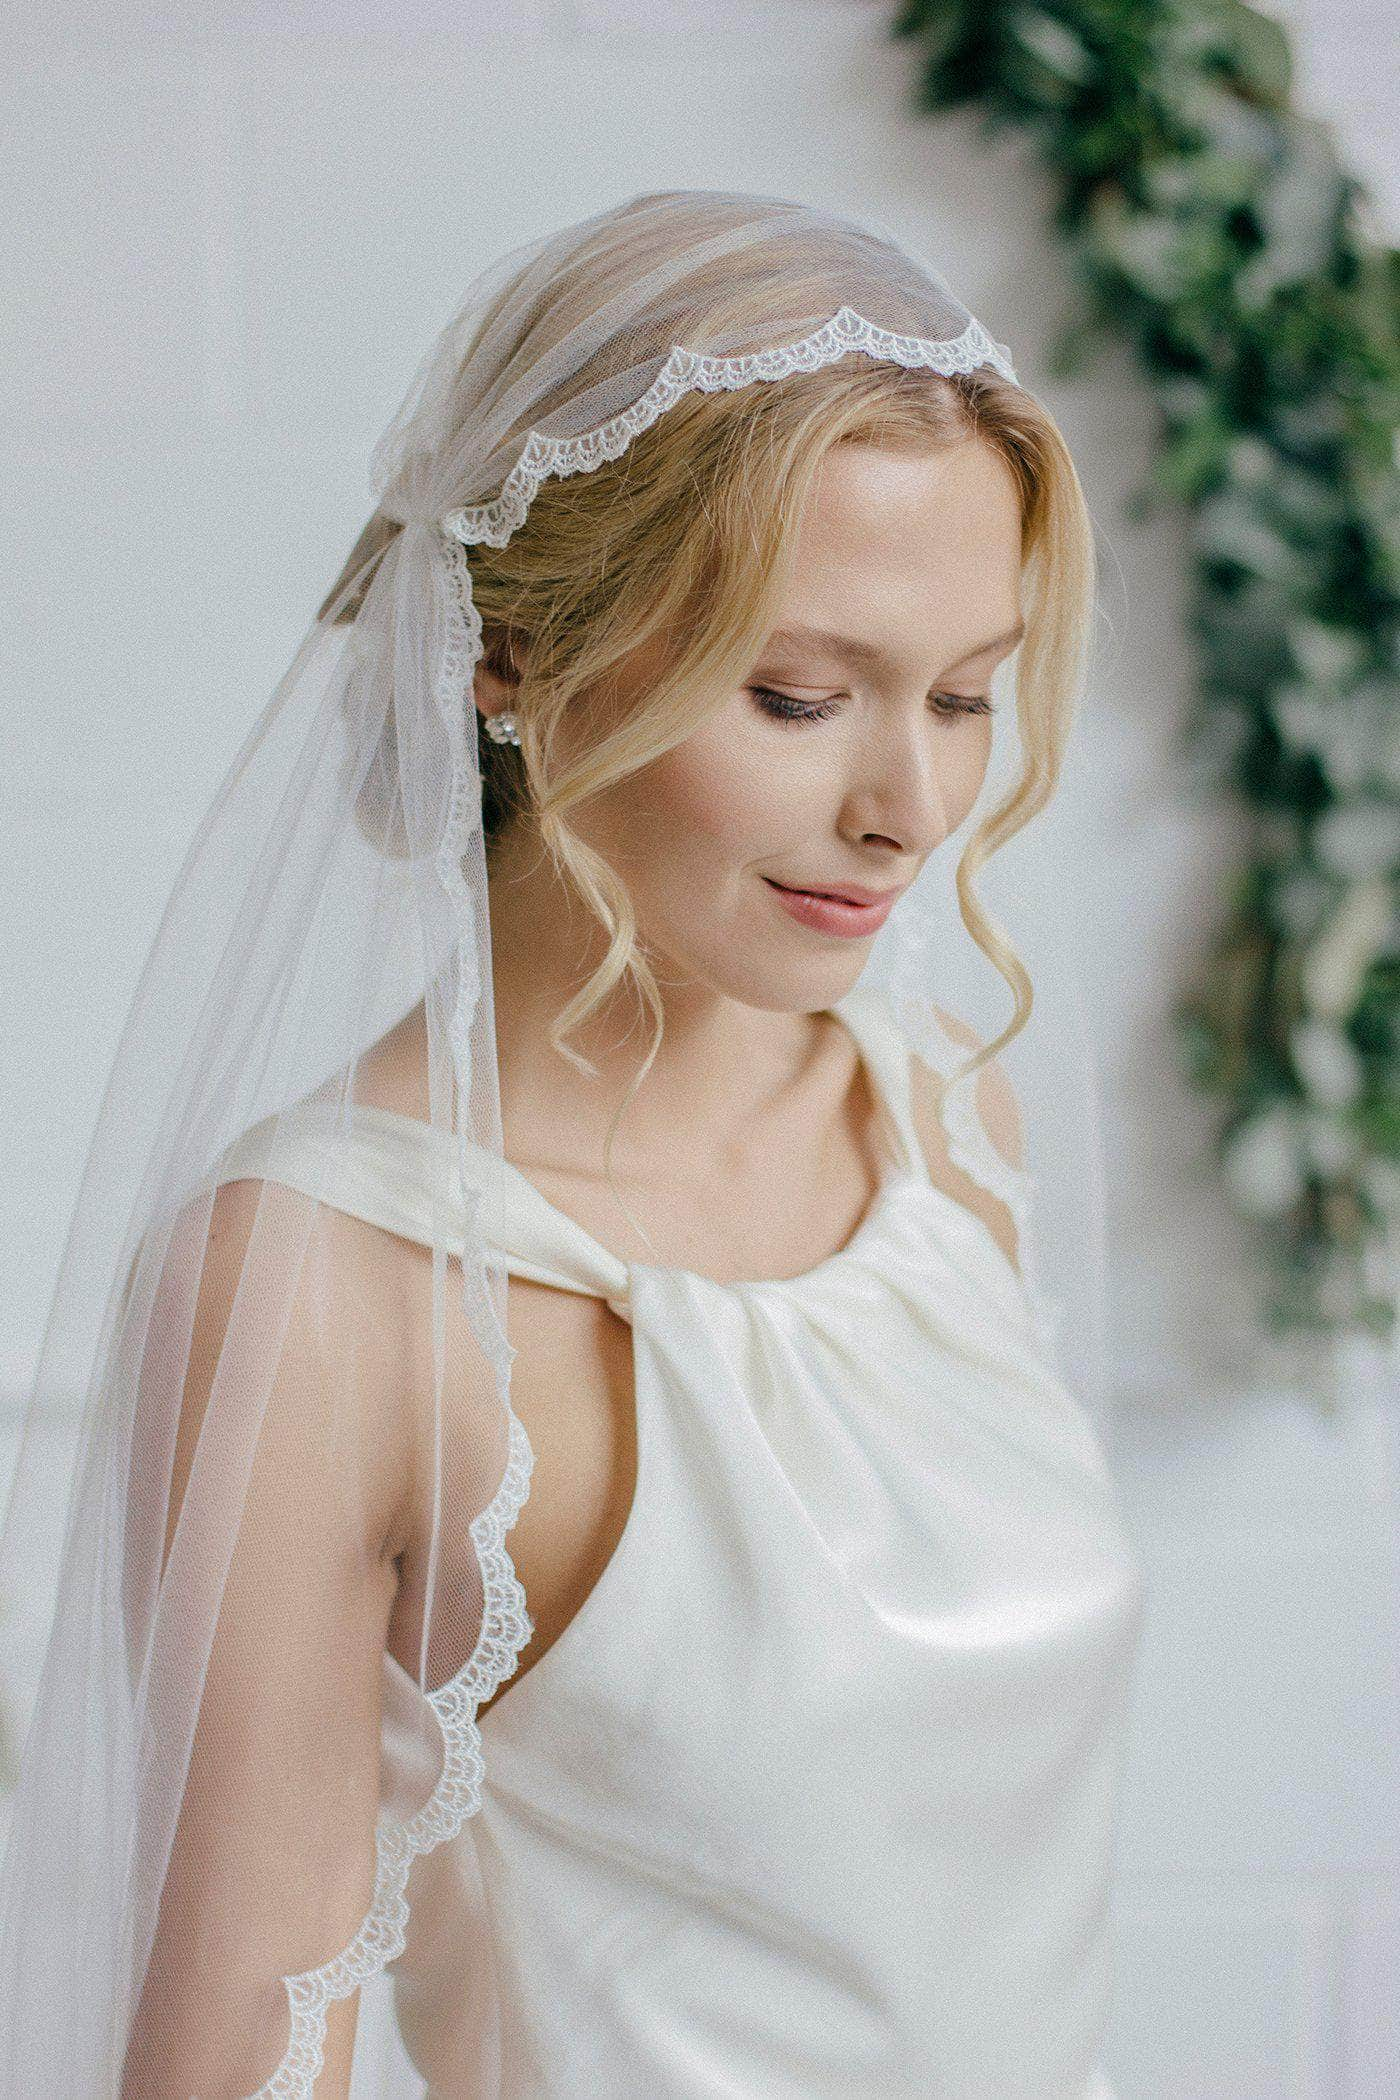 Lace Edge Juliet Cap Wedding Veil - 'Edna'